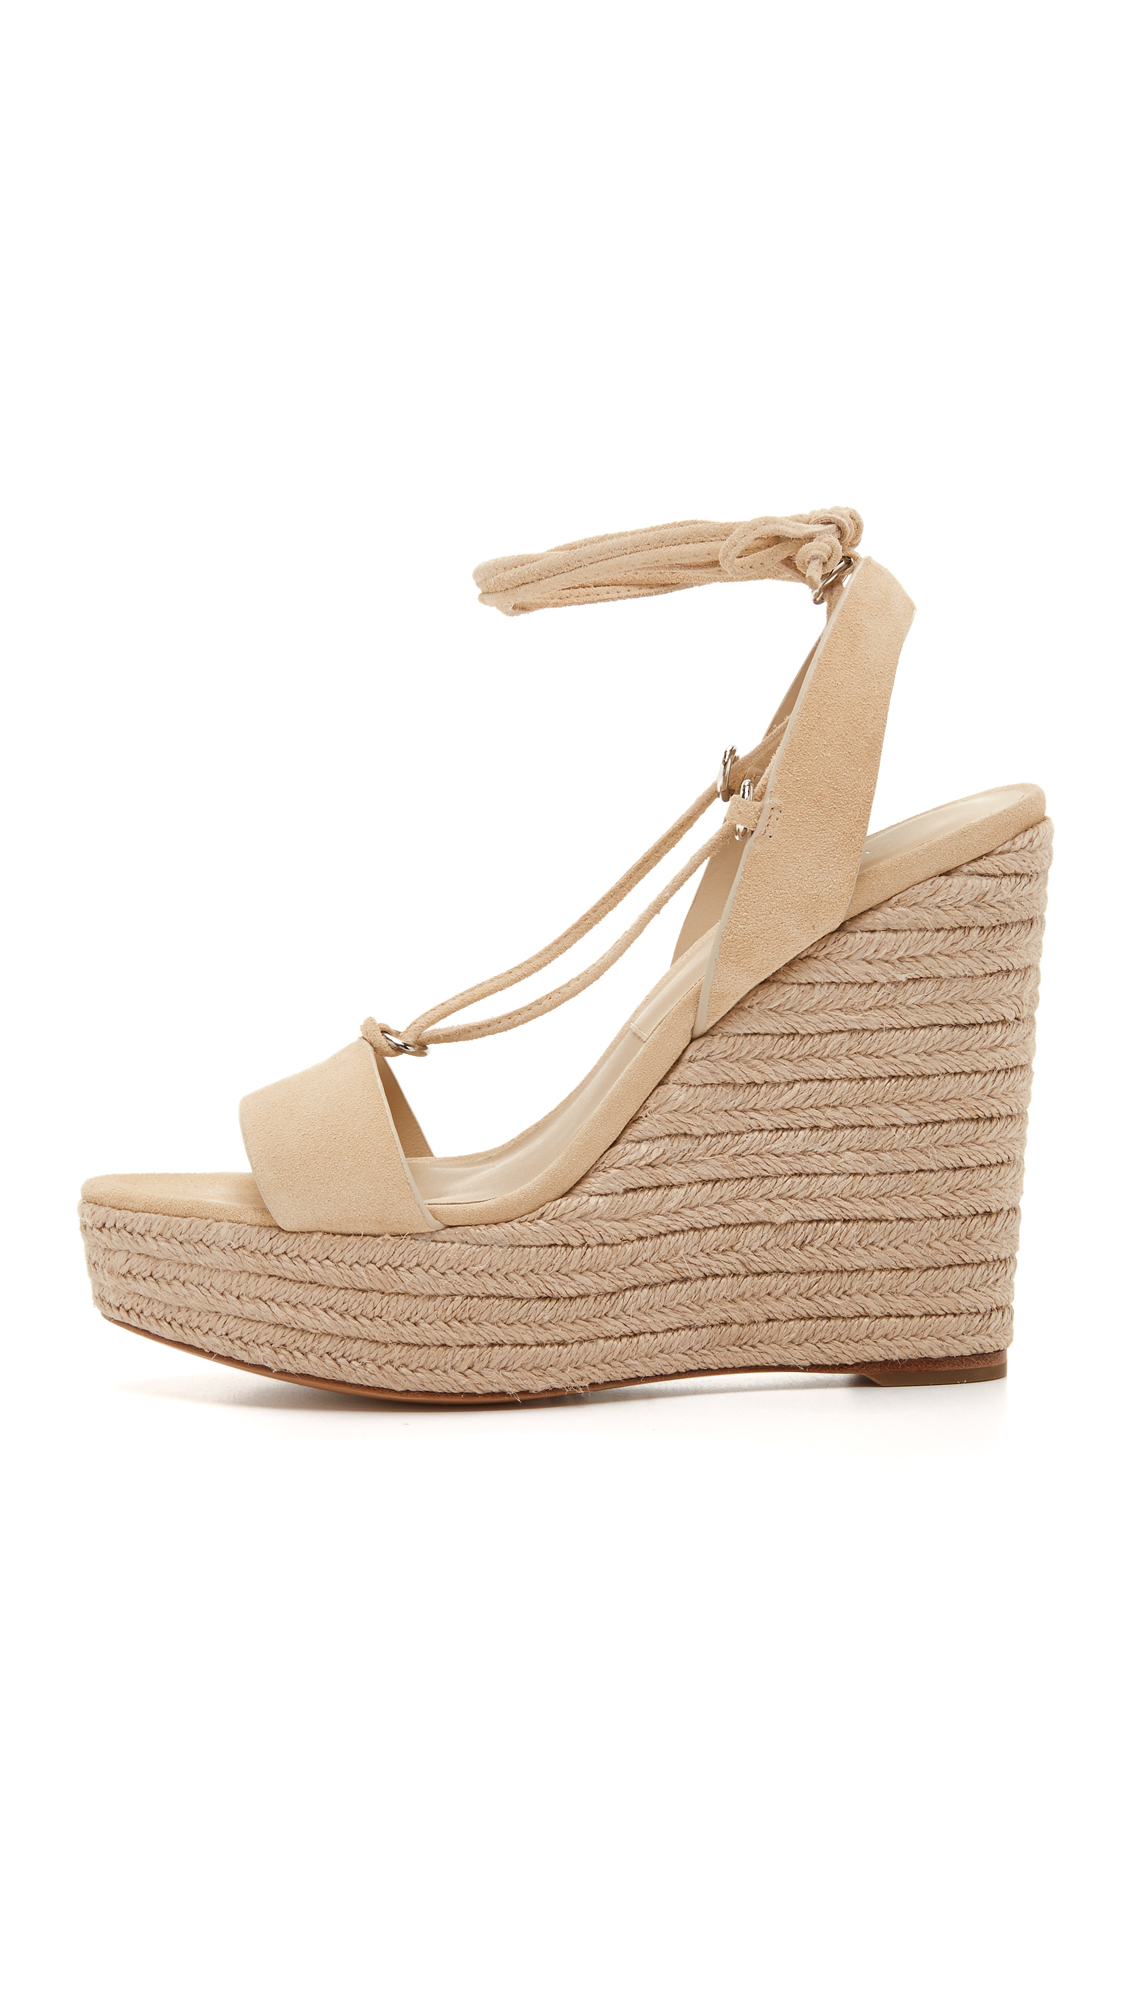 Calvin Klein Wedge Shoes Uk